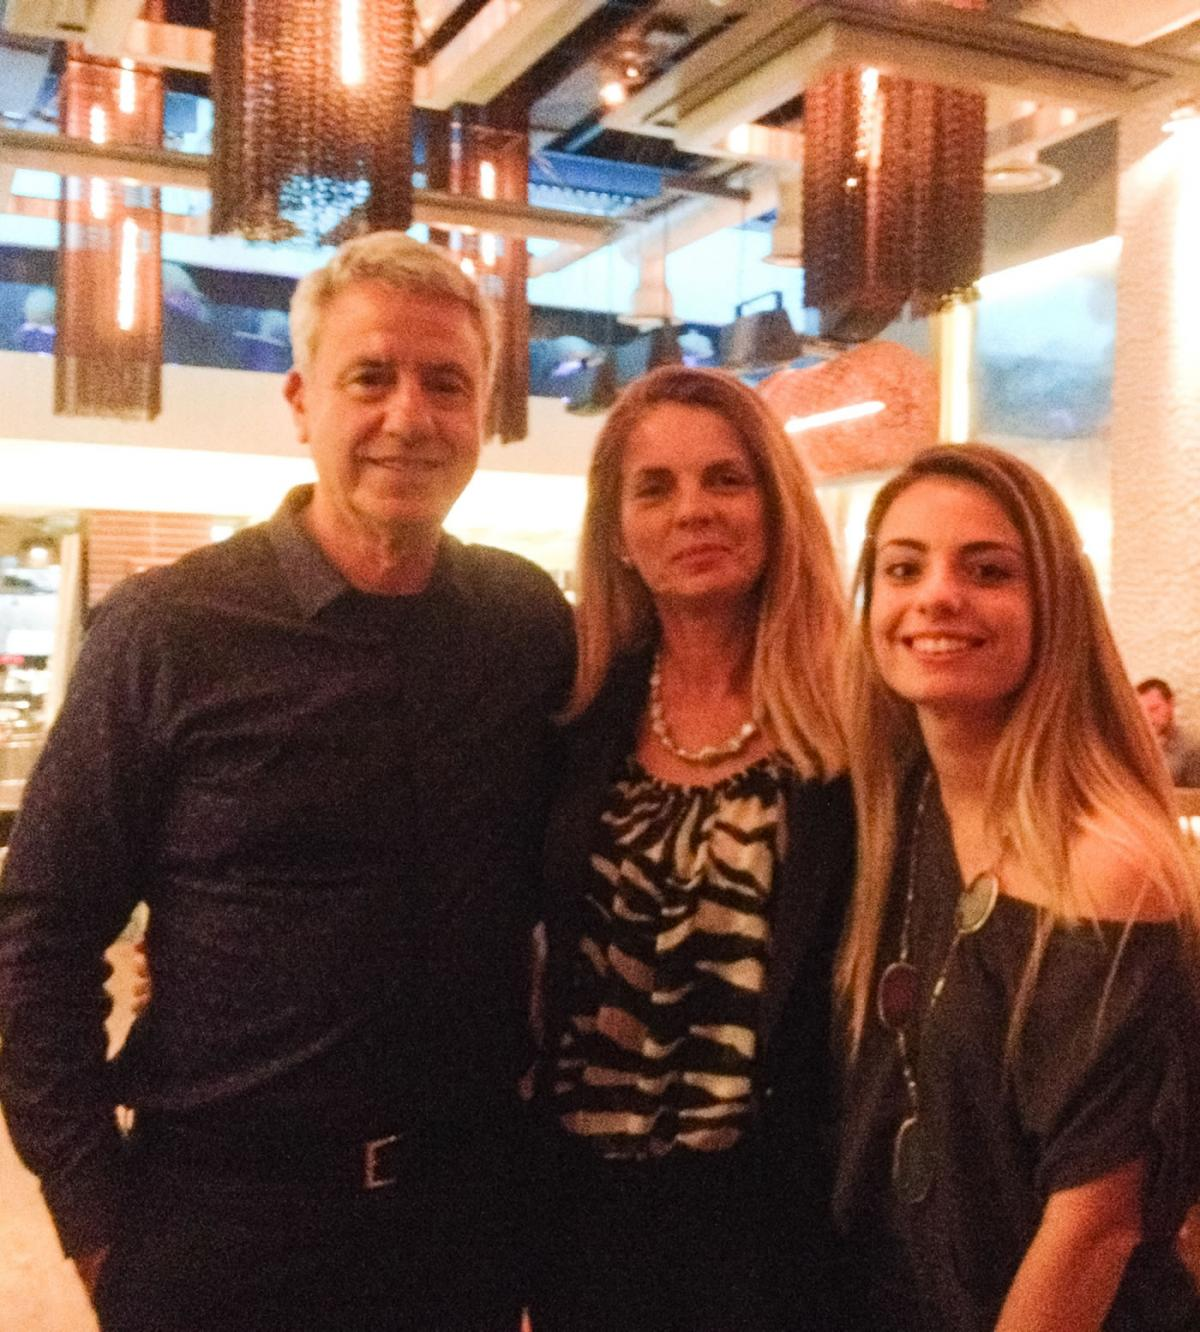 Vangelis Gerovassiliou with wife Sonia and daughter Vasiliki